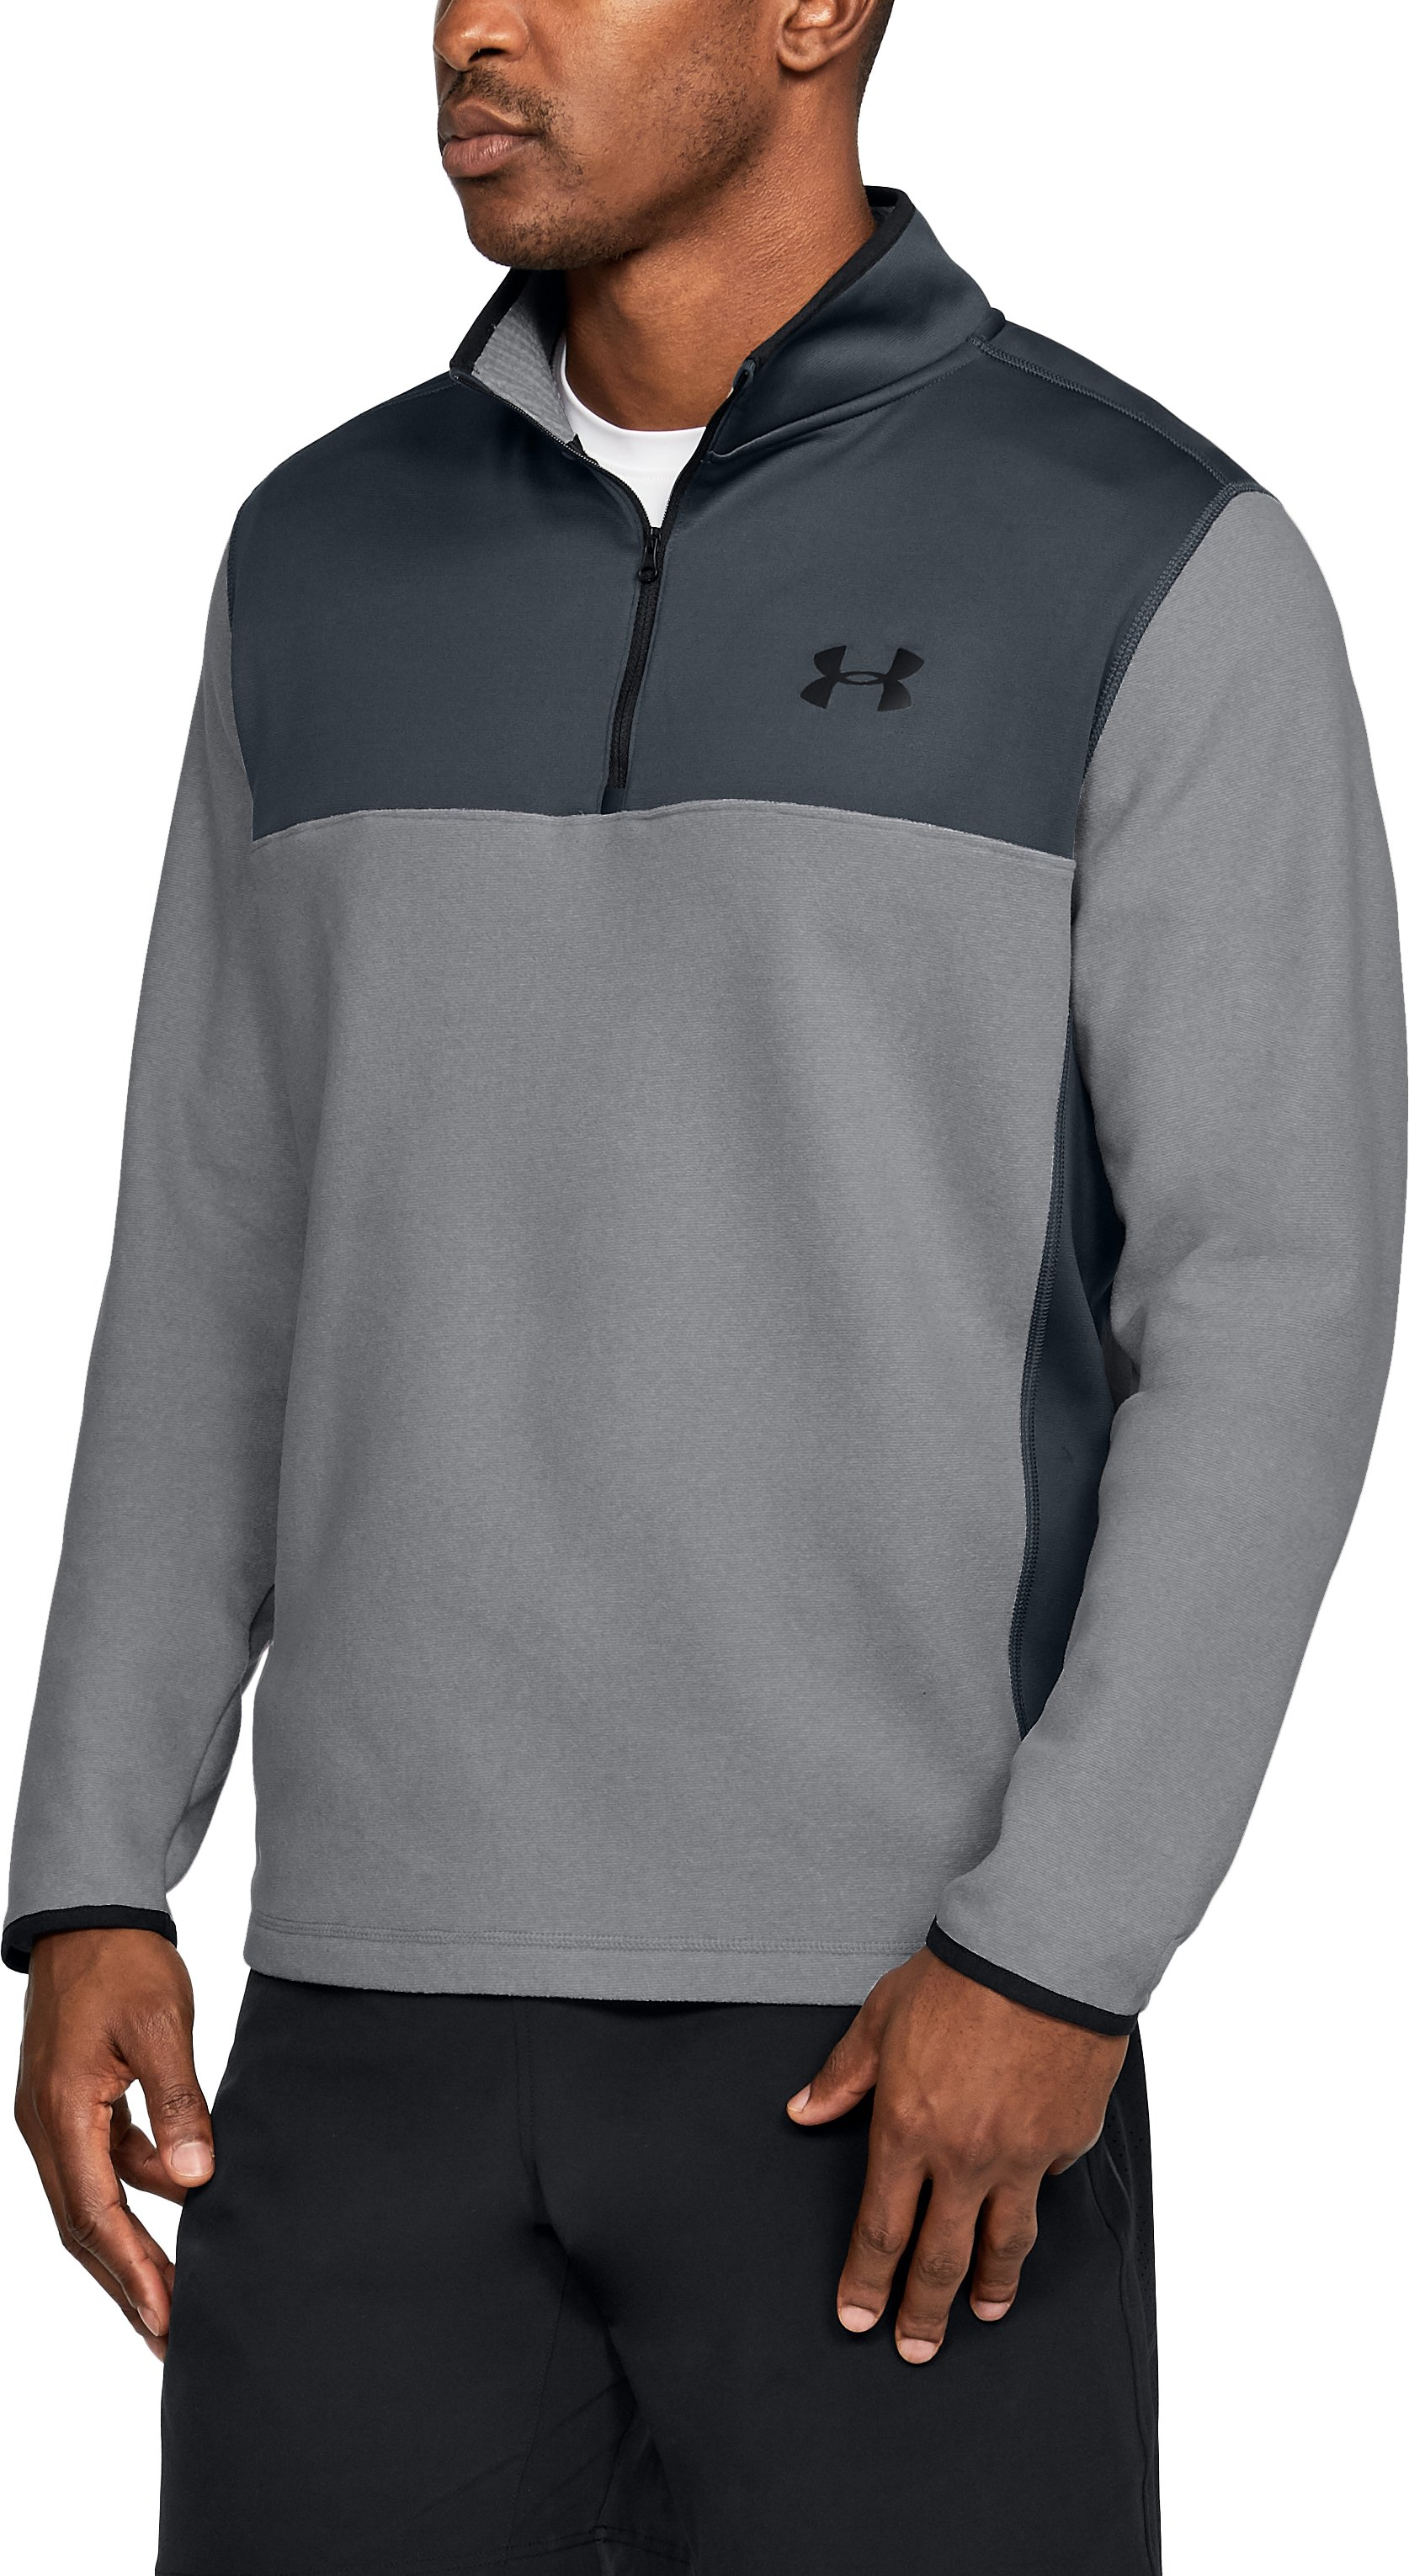 Men's ColdGear® Infrared Fleece ¼ Zip, Graphite